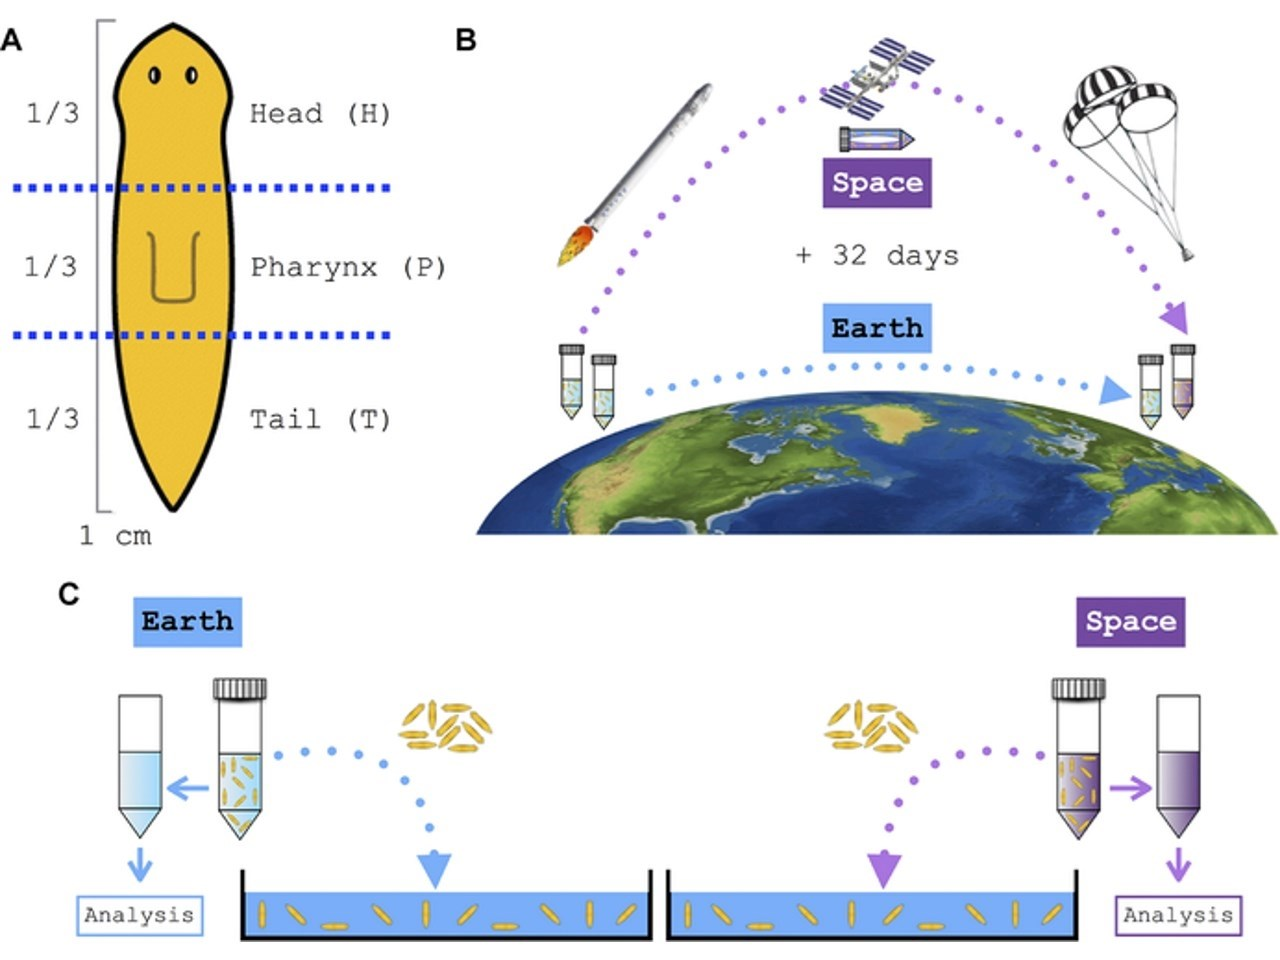 Flatworm amputation and space-exposed and Earth-bound worm sample schematics